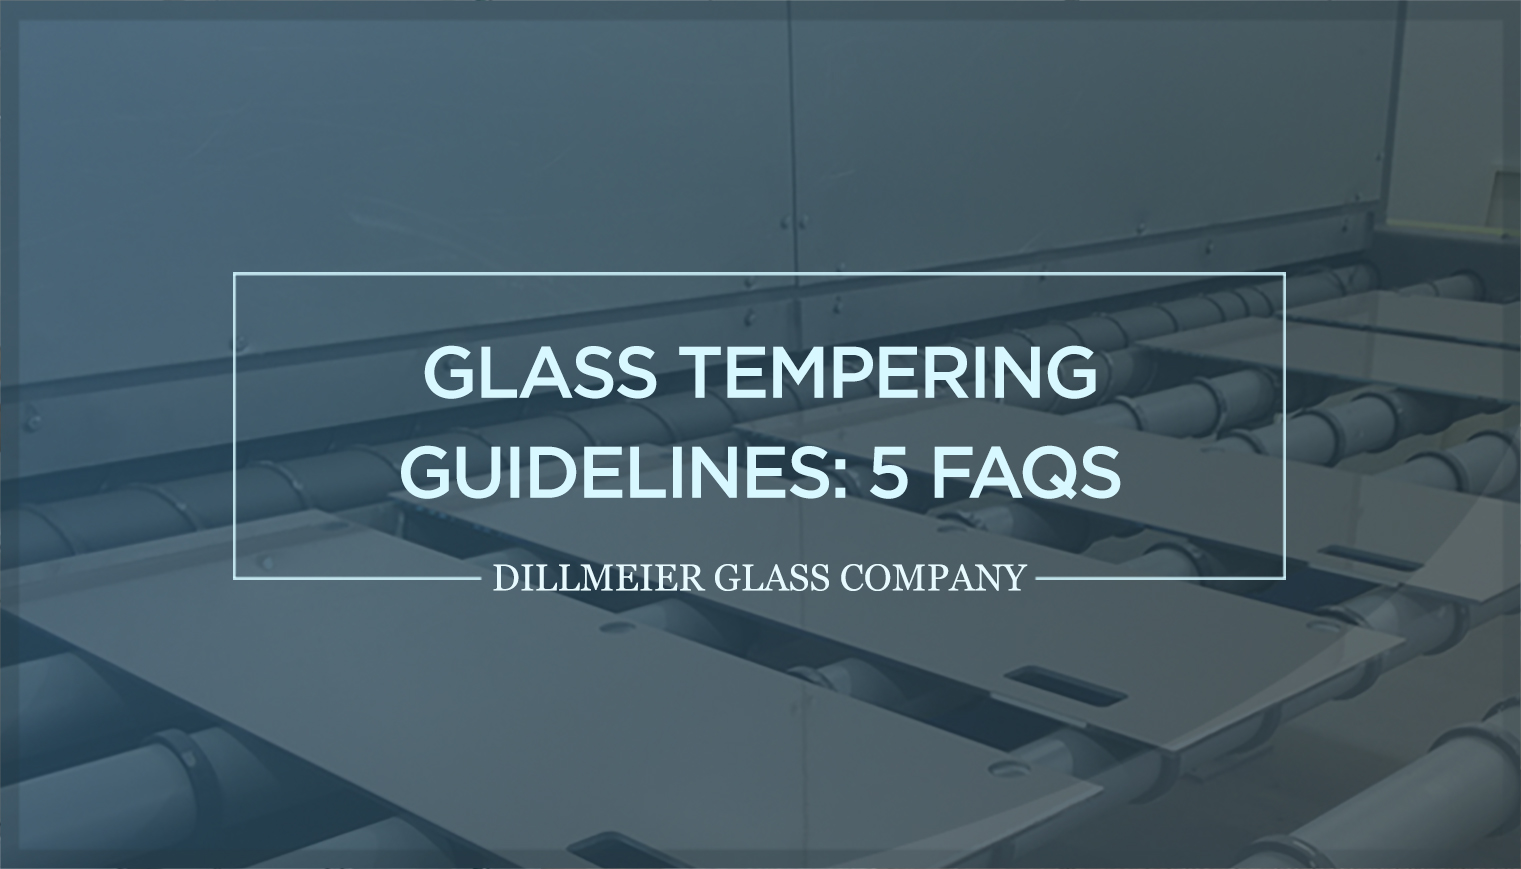 Glass Tempering Guidelines: 5 FAQs